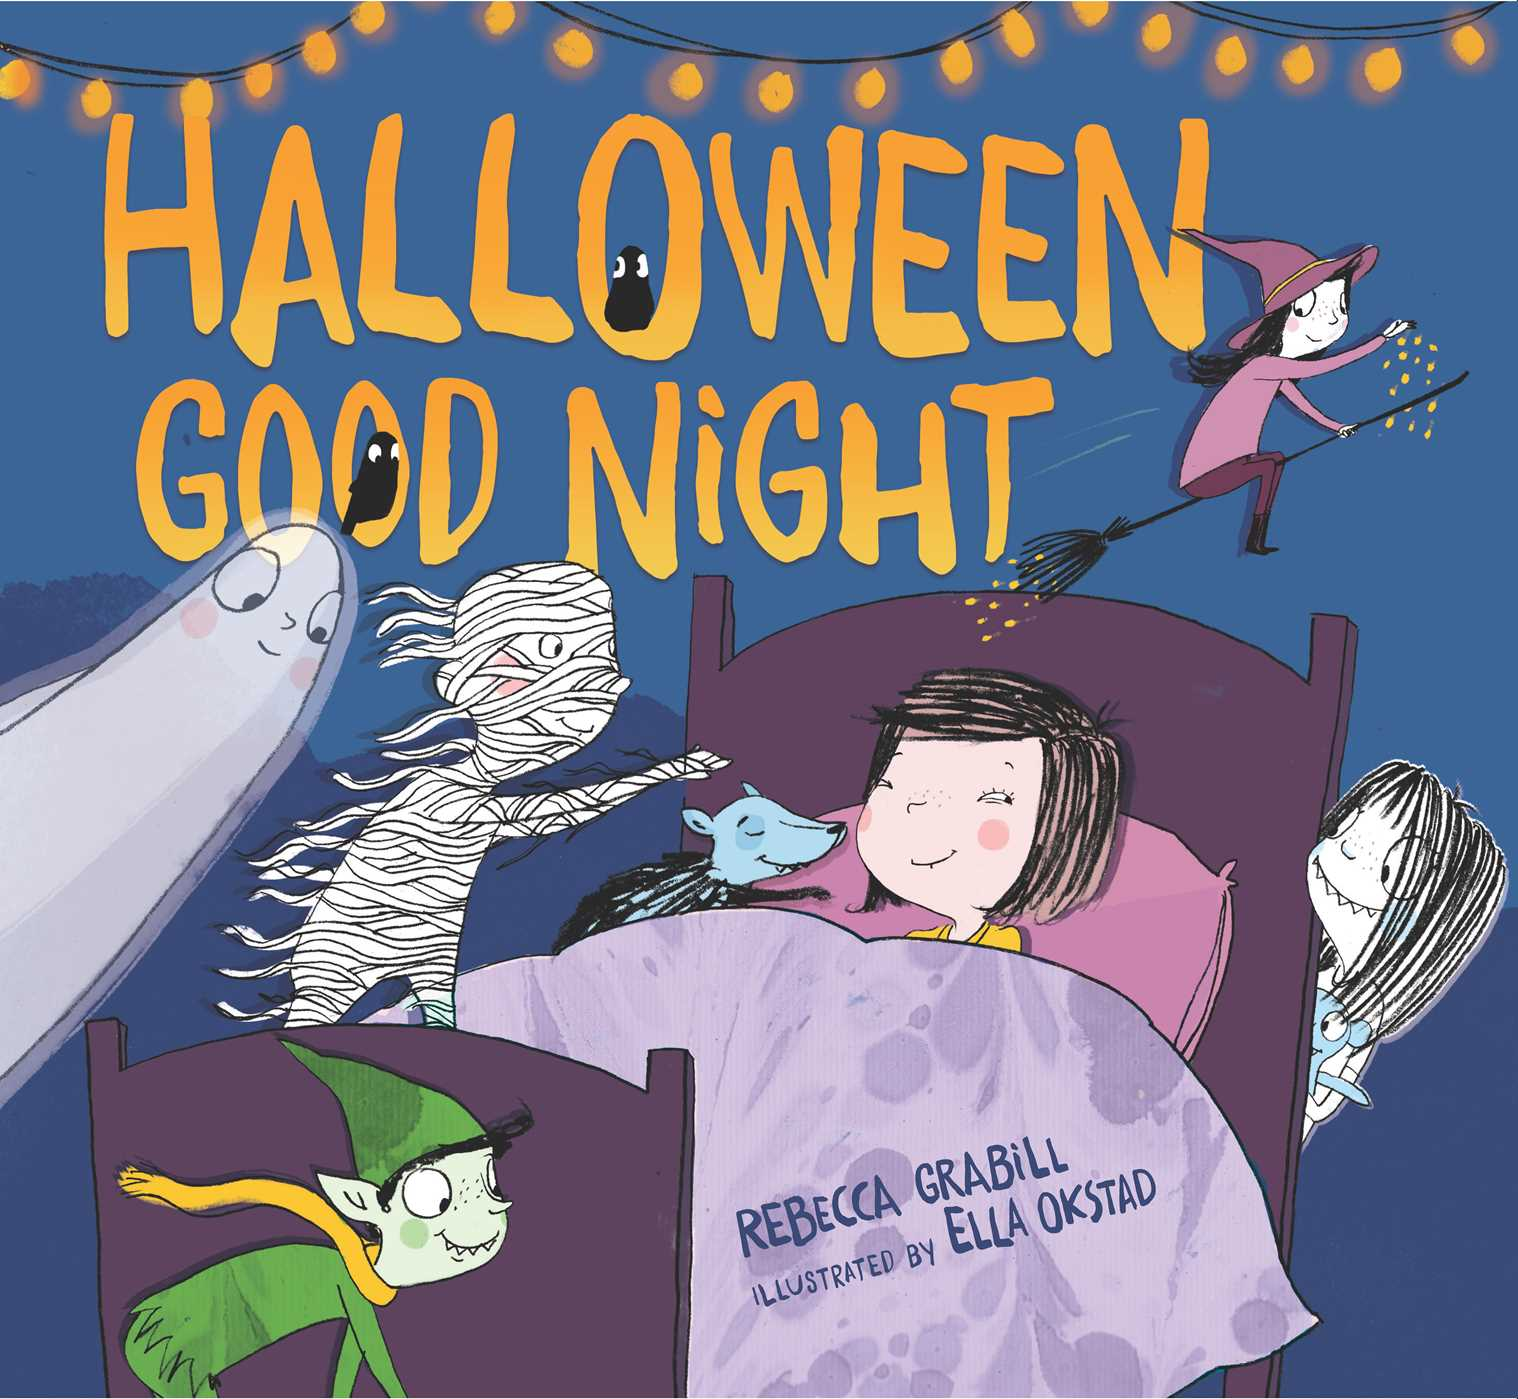 Book Cover Image (jpg): Halloween Good Night